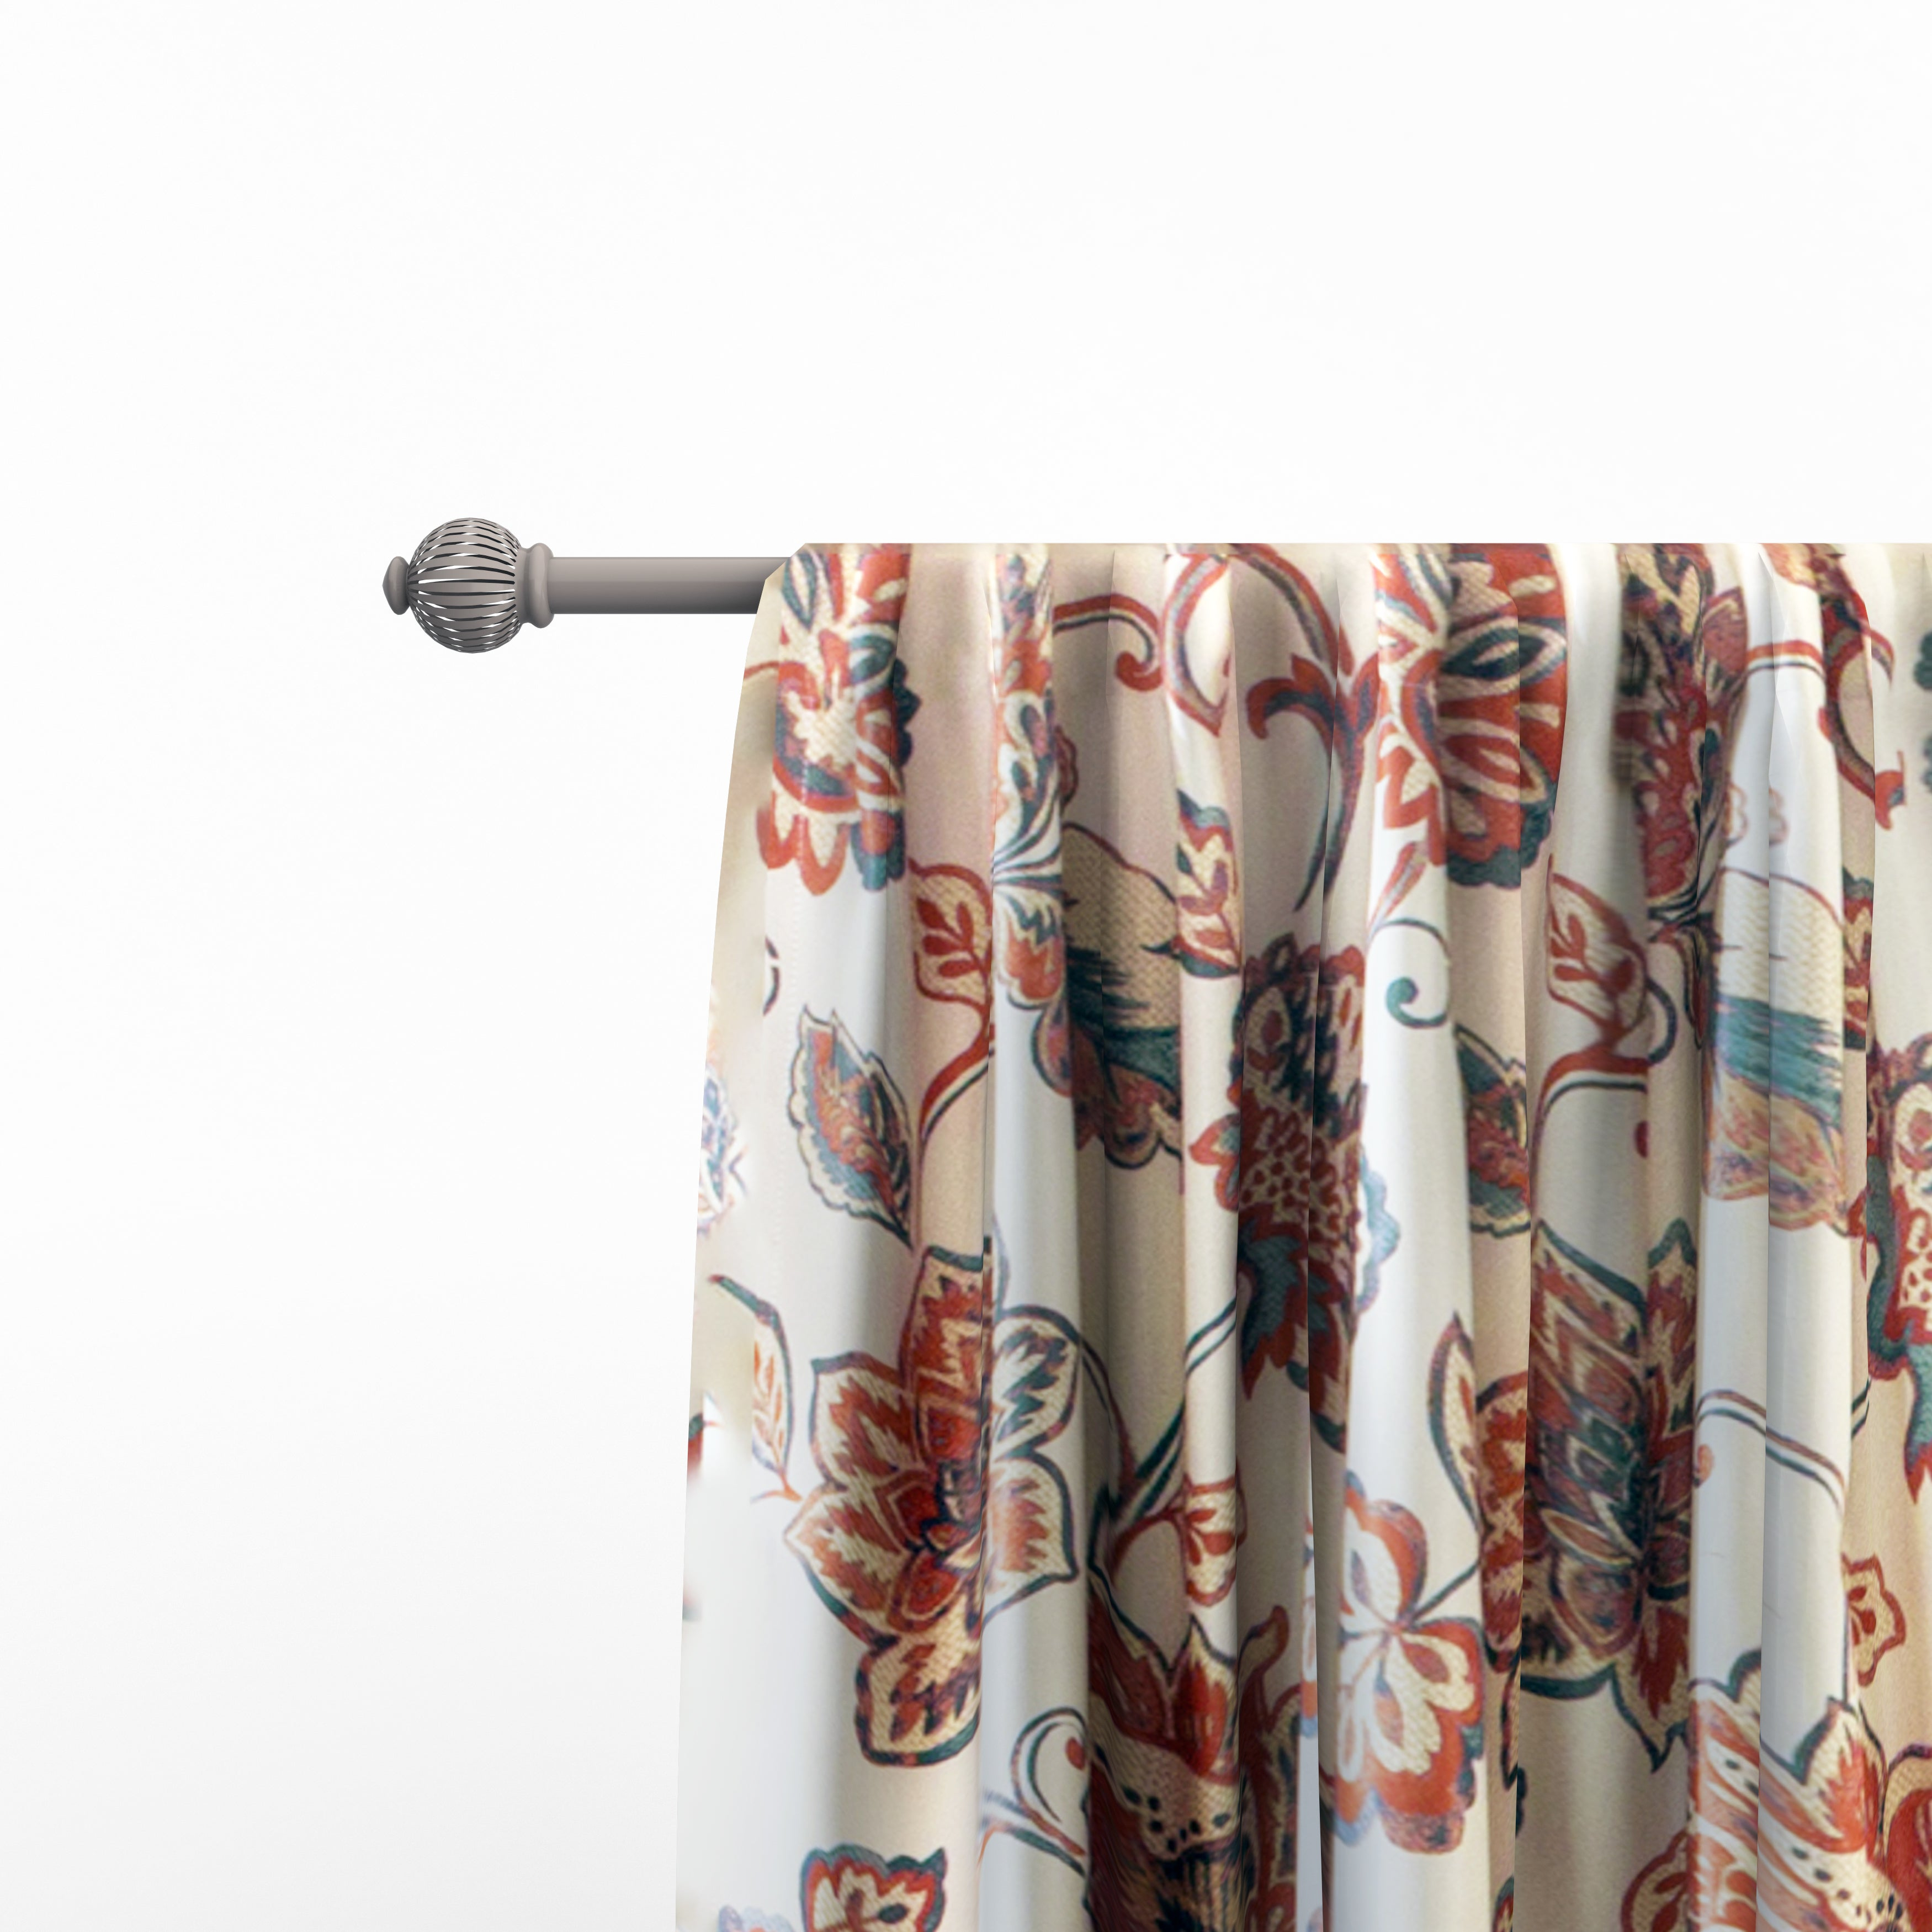 The Curated Nomad Conchita Floral Curtain Panel Pair Regarding Gray Barn Dogwood Floral Curtain Panel Pairs (View 5 of 20)